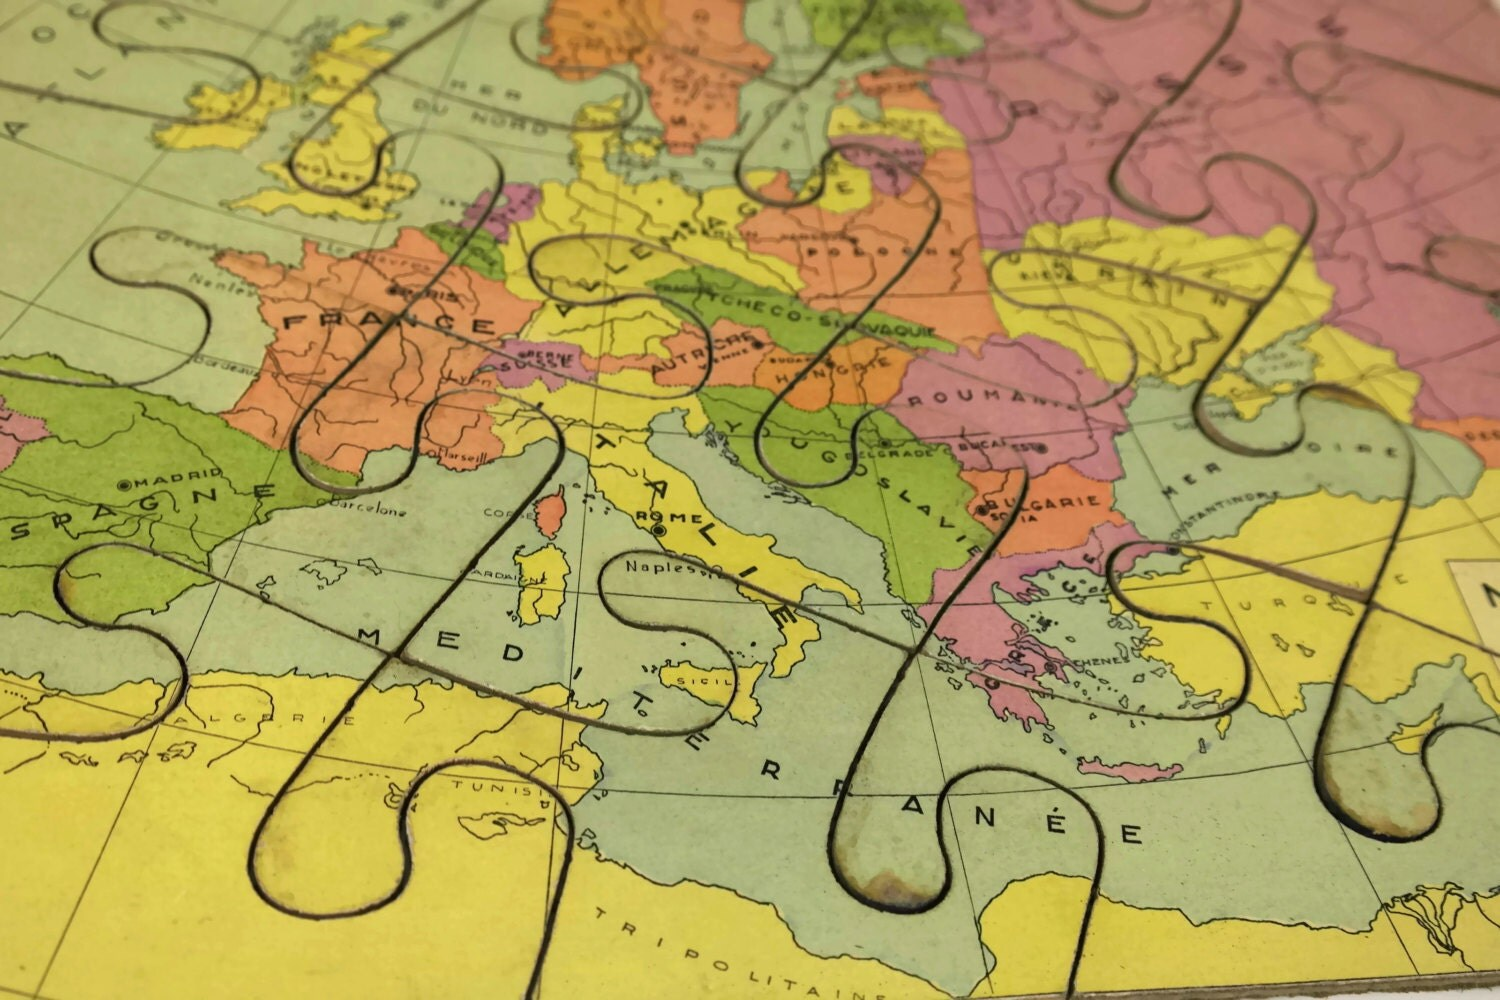 French vintage world map jigsaw puzzle map of europe wooden puzzle french vintage world map jigsaw puzzle map of europe wooden puzzle gallery photo gallery photo gallery photo gallery photo gallery photo gumiabroncs Image collections